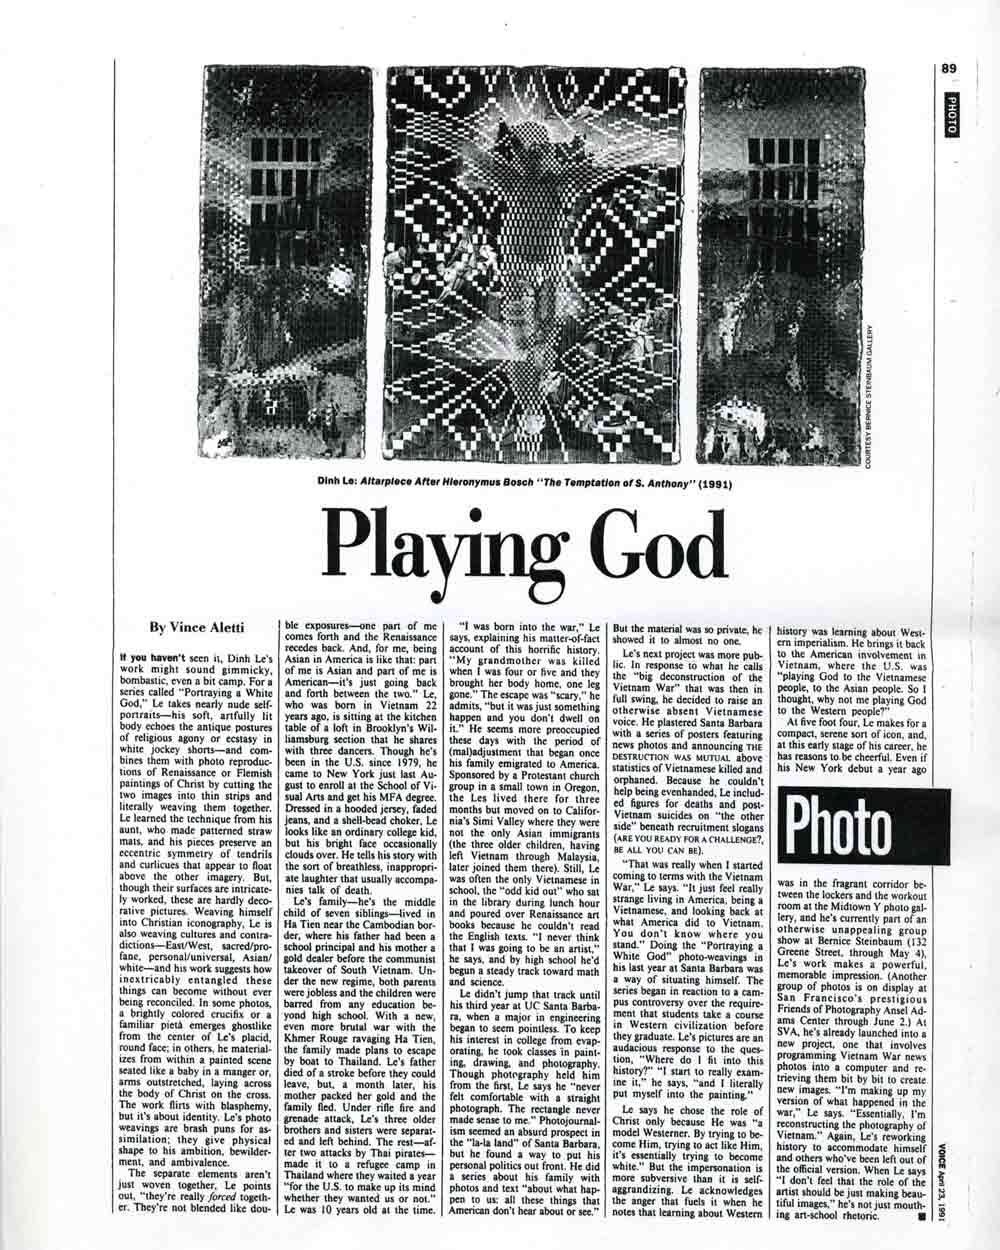 Playing God article